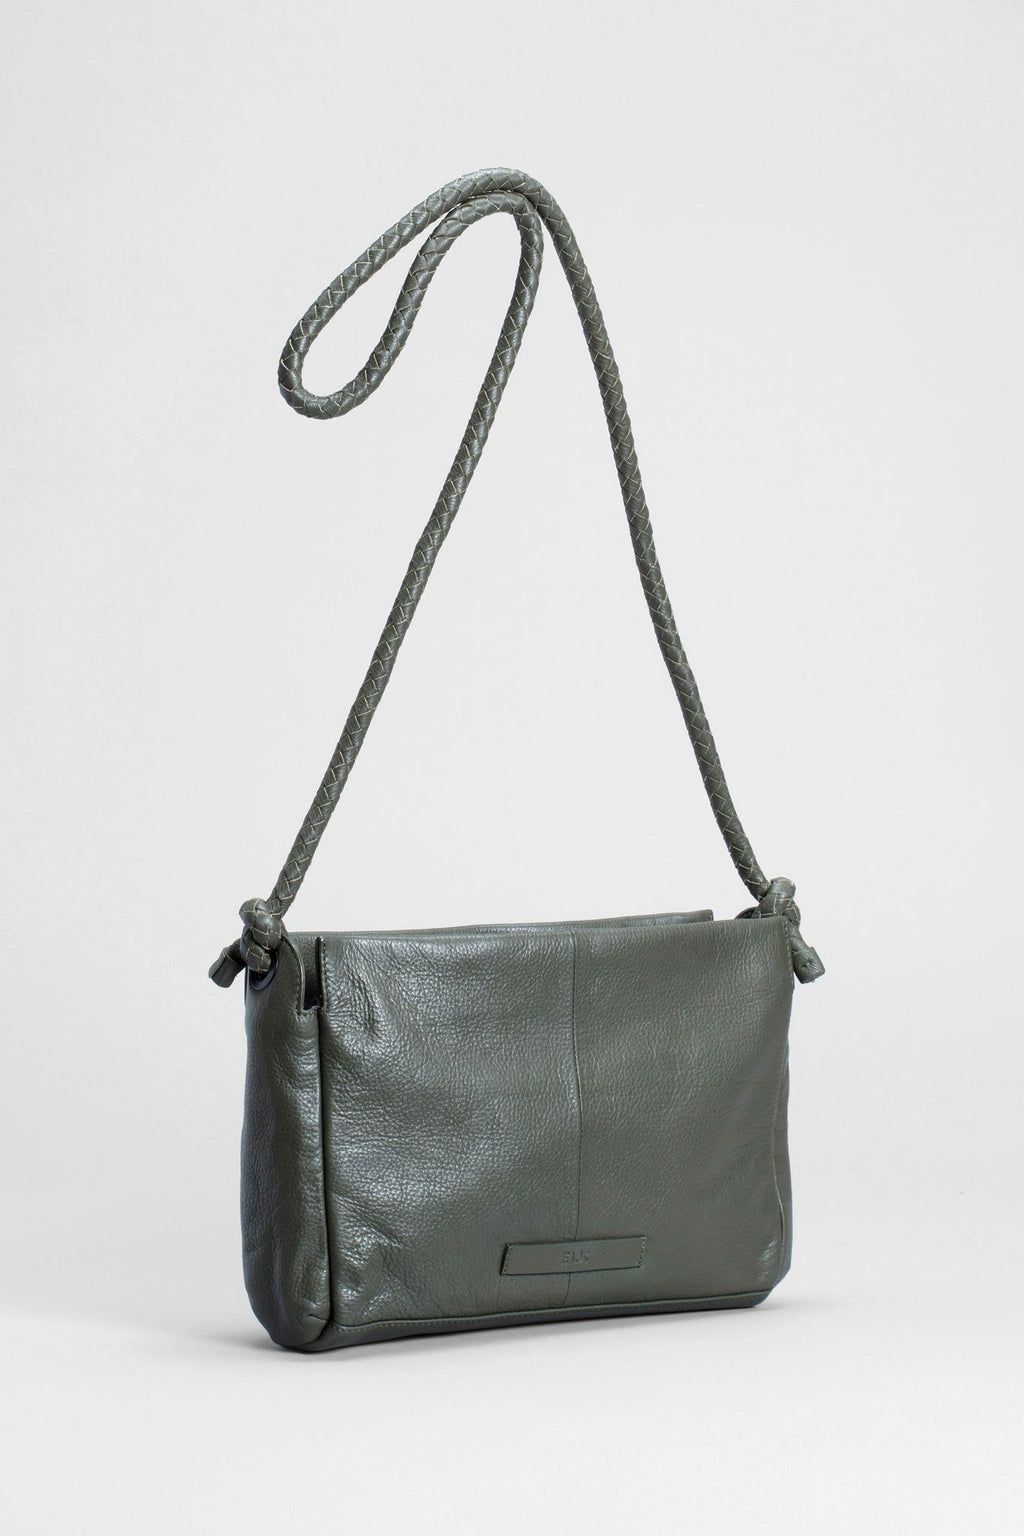 ELK The Label - Hede Small Bag online at PAYA boutique